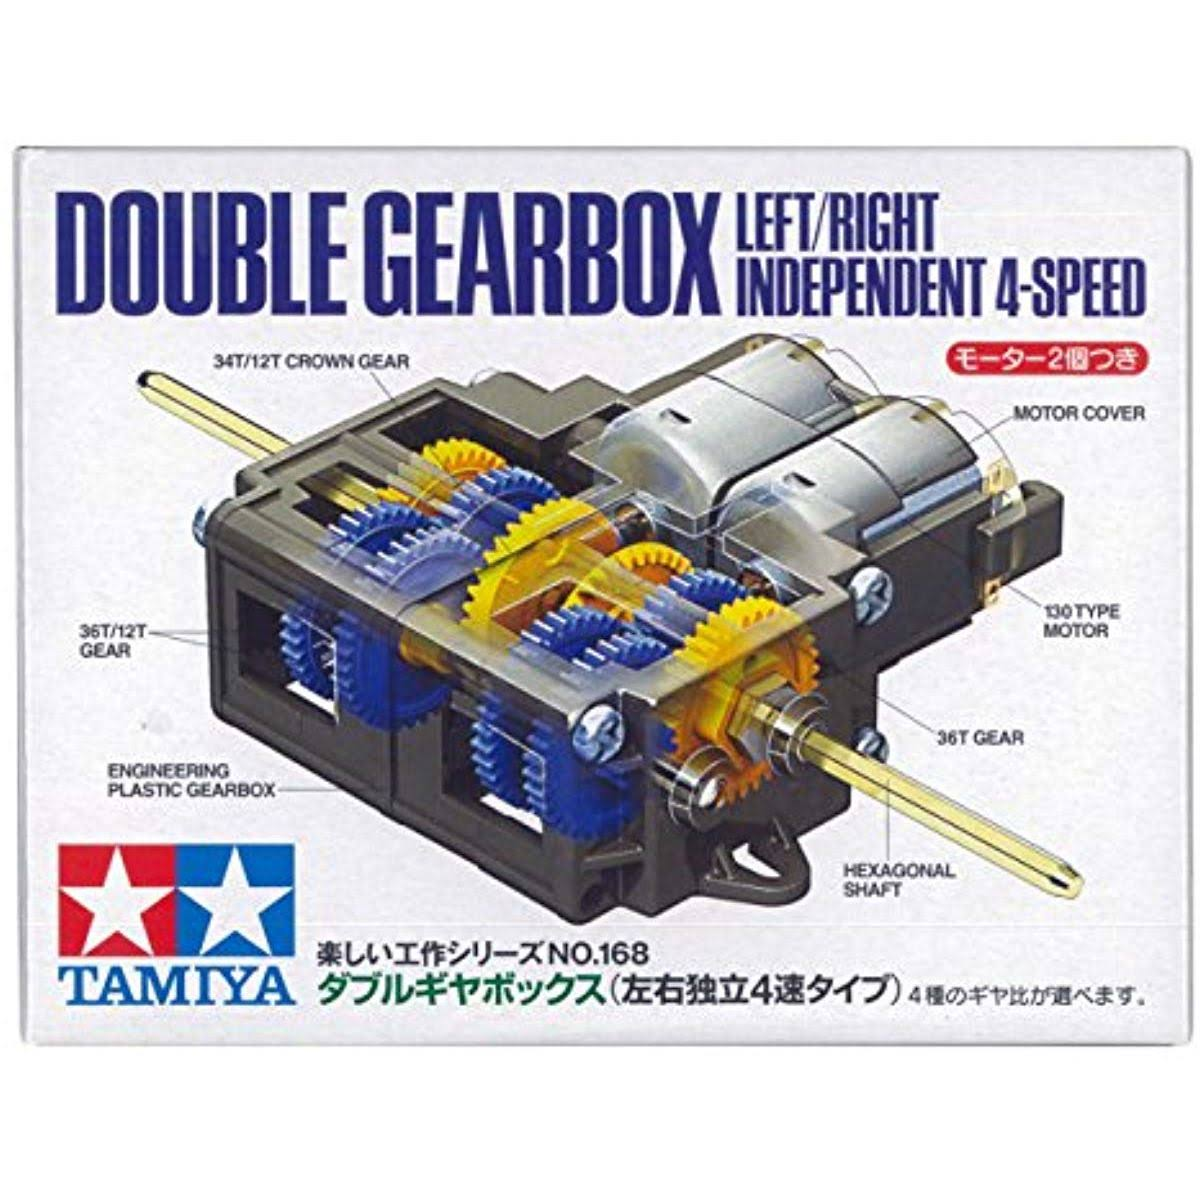 Tamiya Double Gearbox - Left/Right Independent, 4 Speed